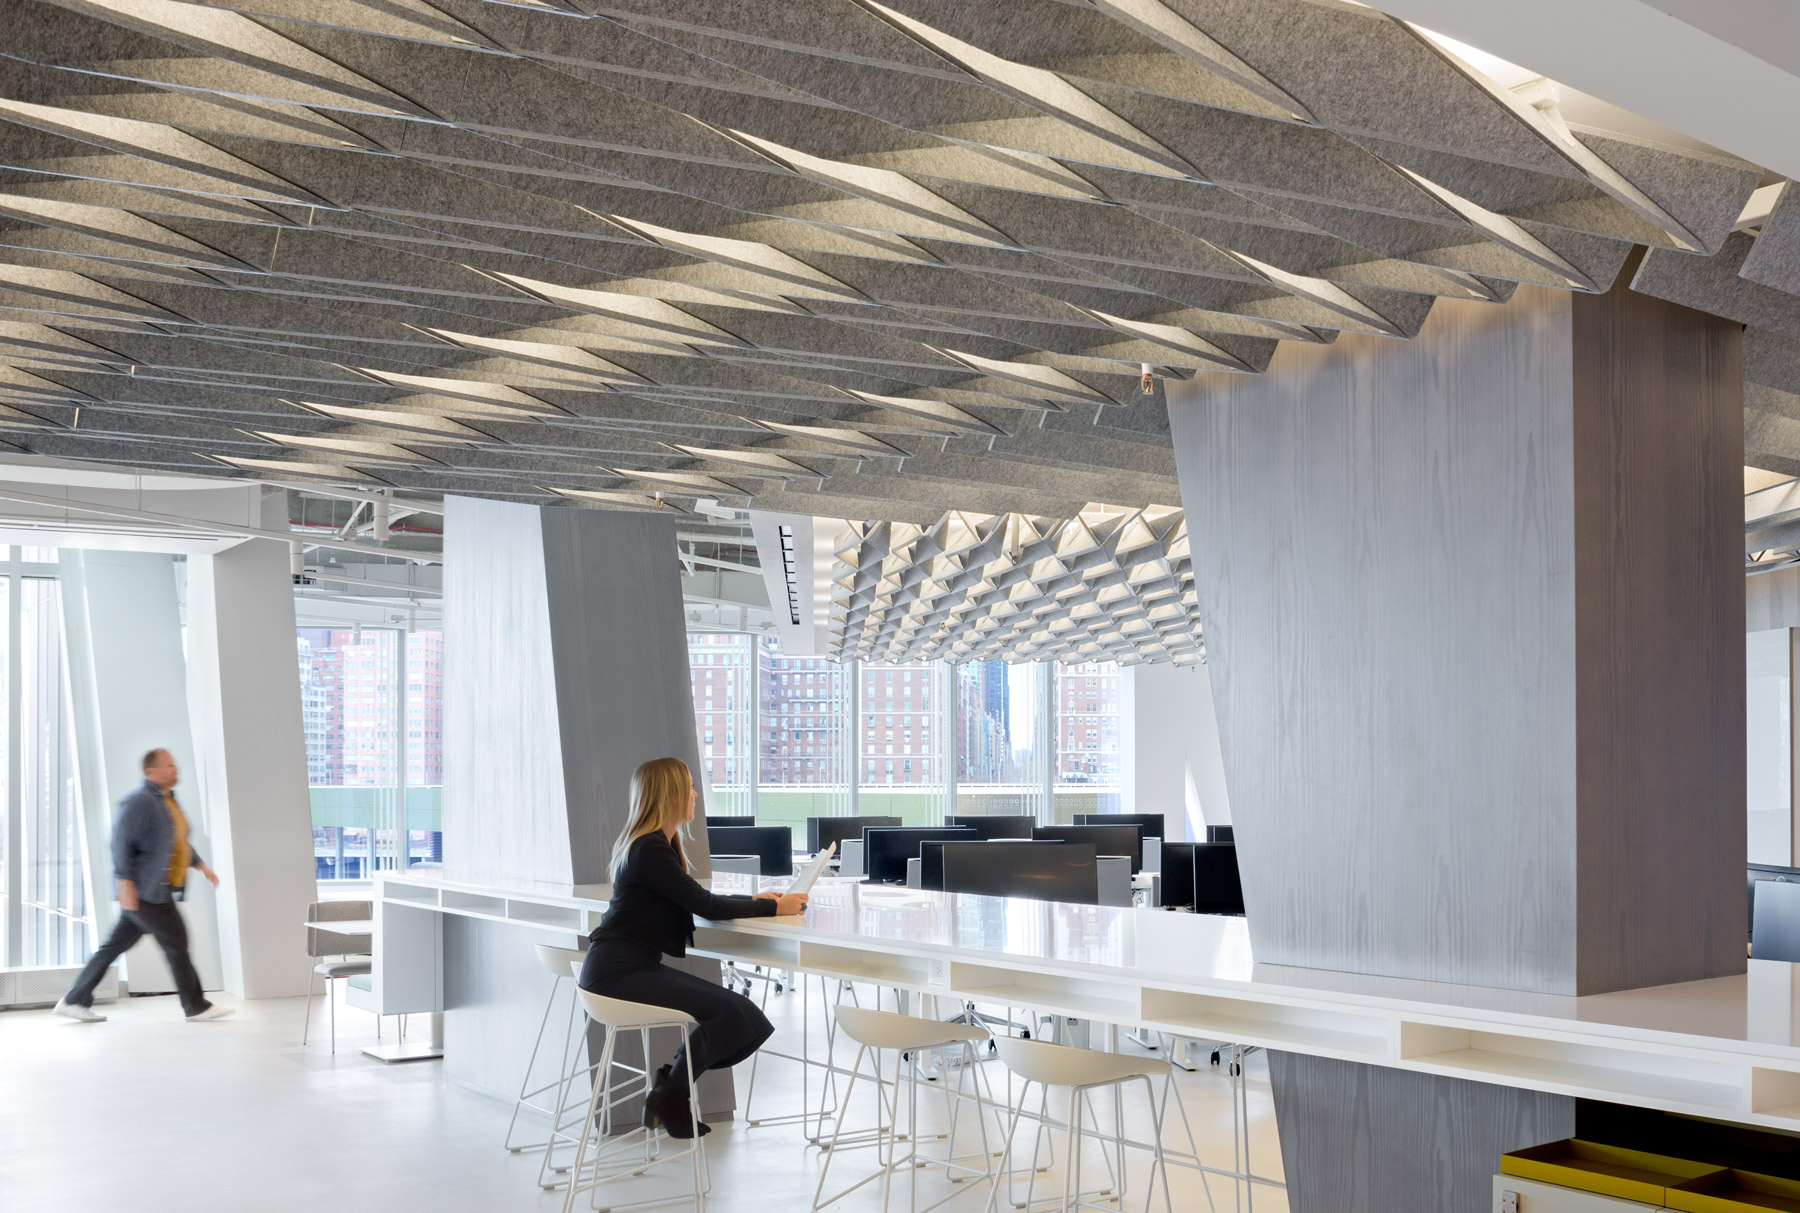 Modular Acoustic Ceiling System Arktura Softfold 174